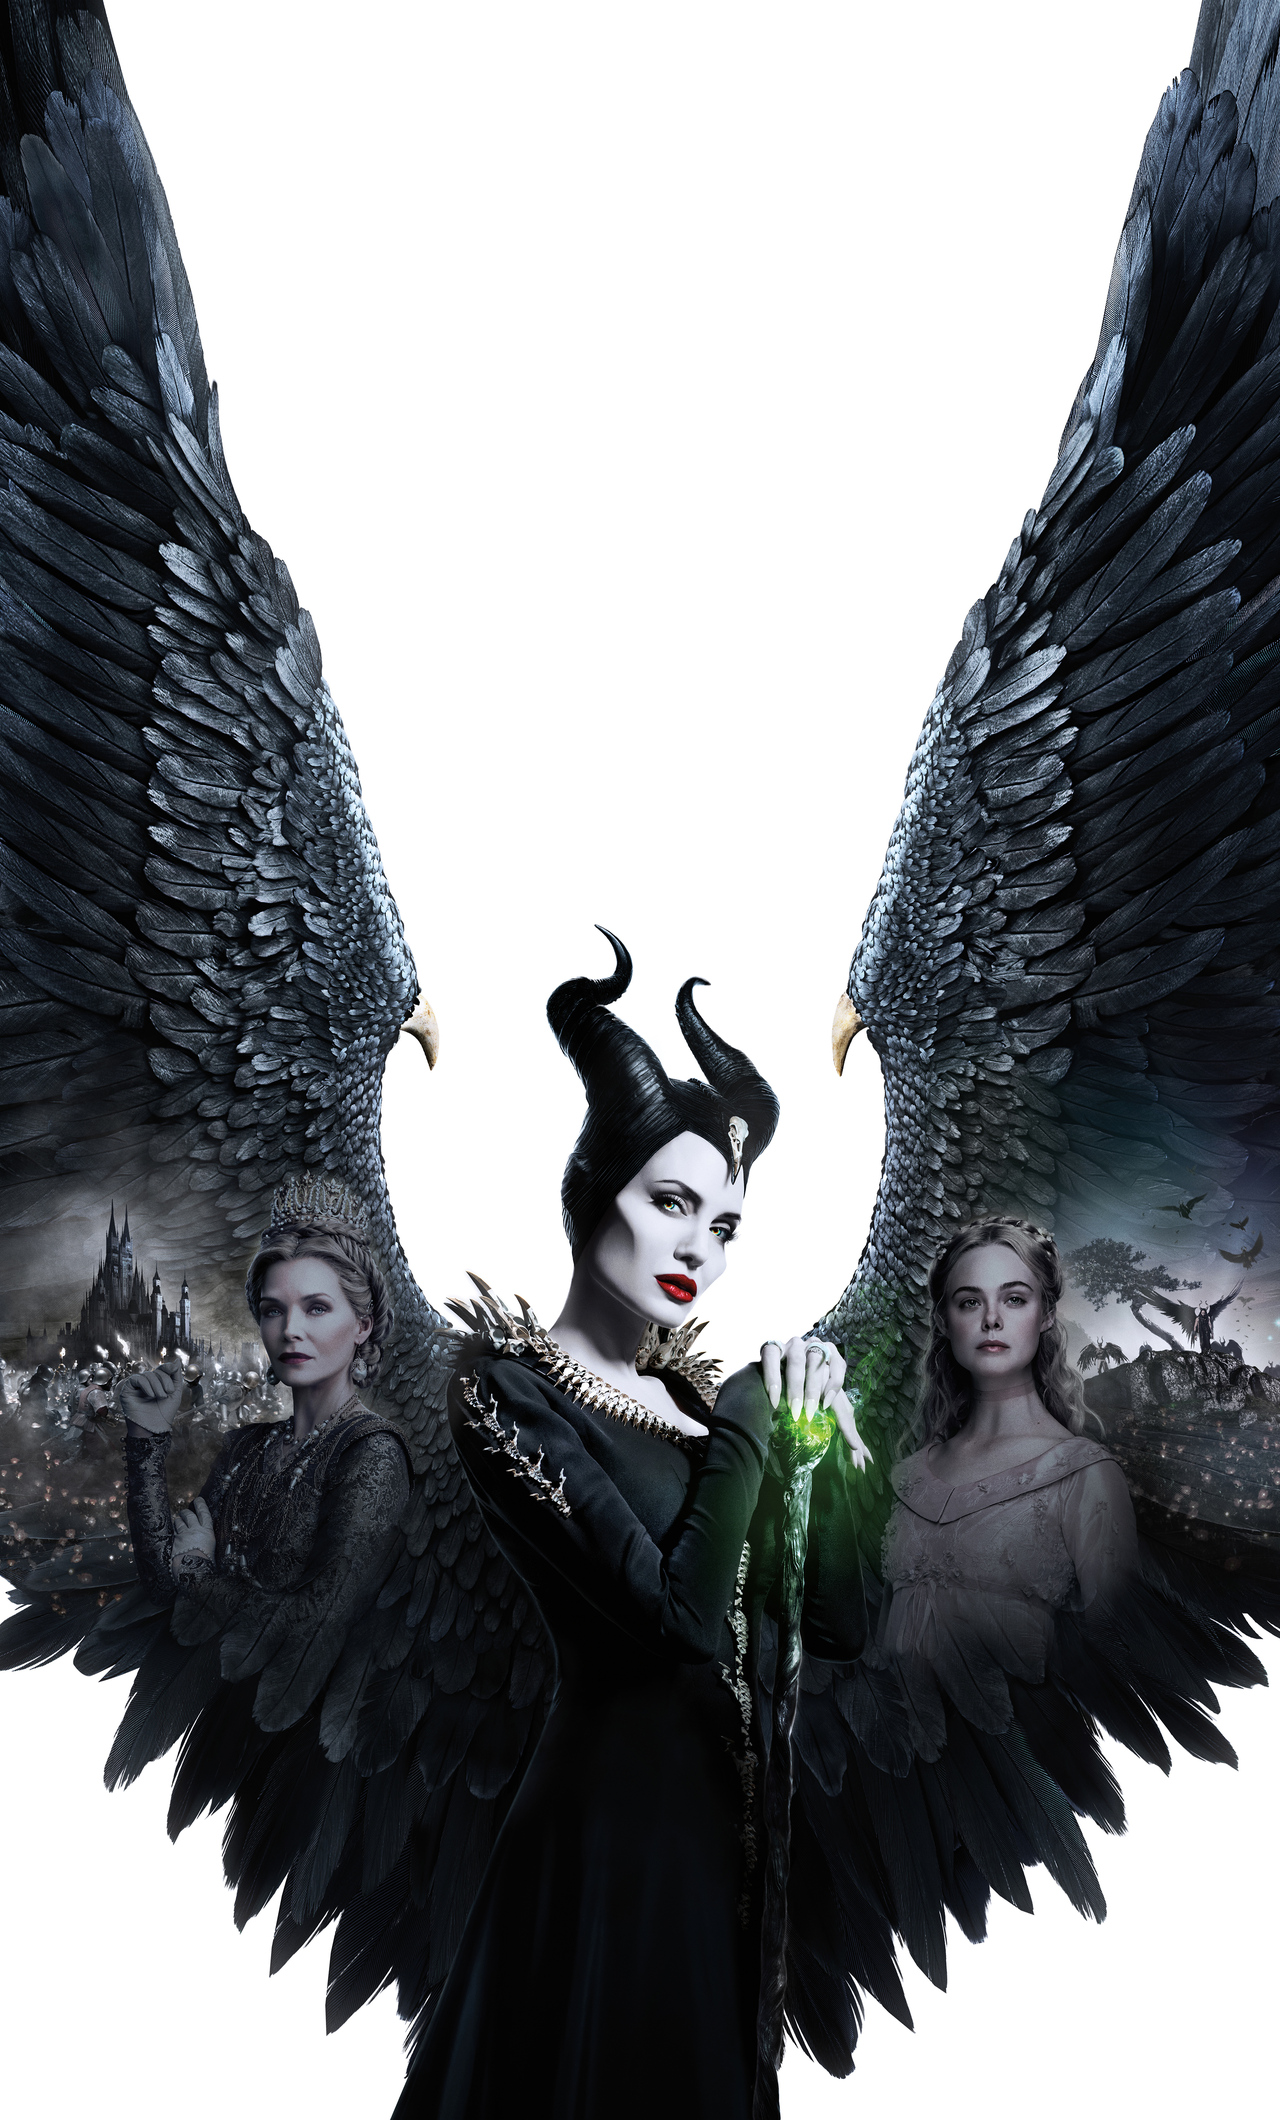 1280x2120 Maleficent Mistress Of Evil 5k 2019 Poster Iphone